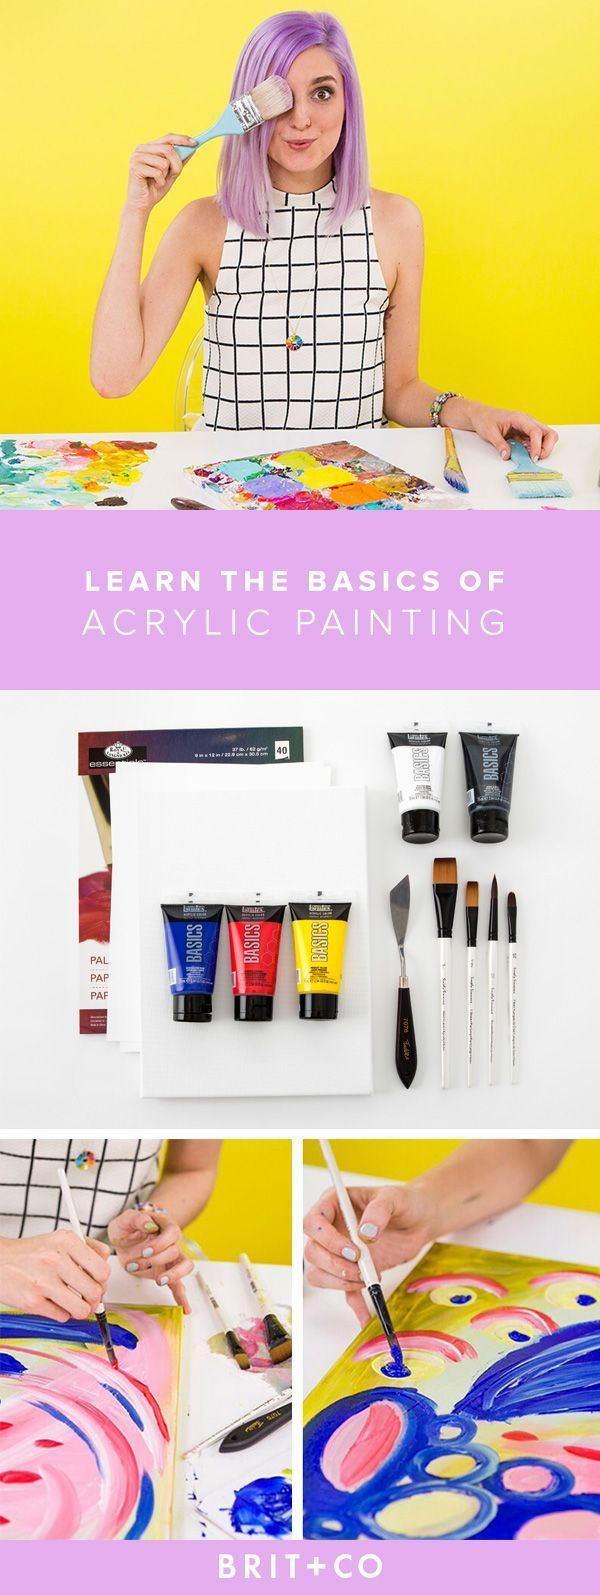 Learn how to paint with acrylics over at Brit&Co.